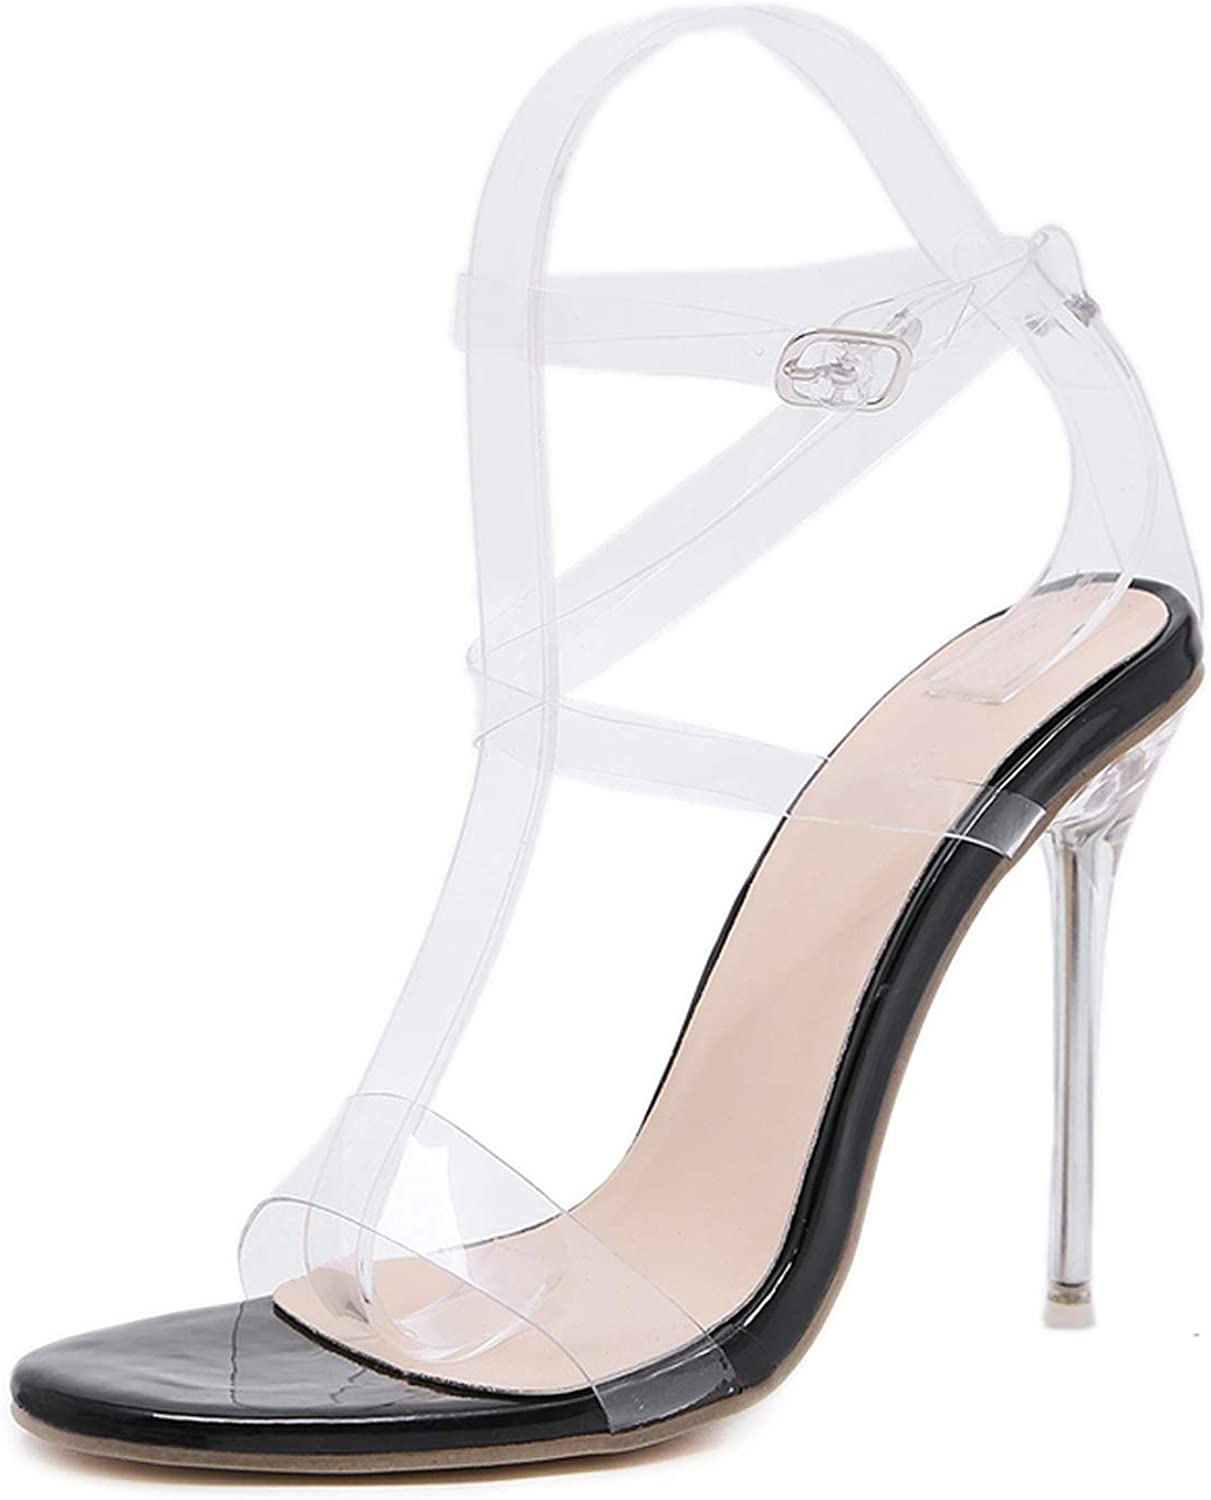 PVC Jelly Sandals Crystal Open Toed Women Transparent Thin Heels Sandals,Black,7